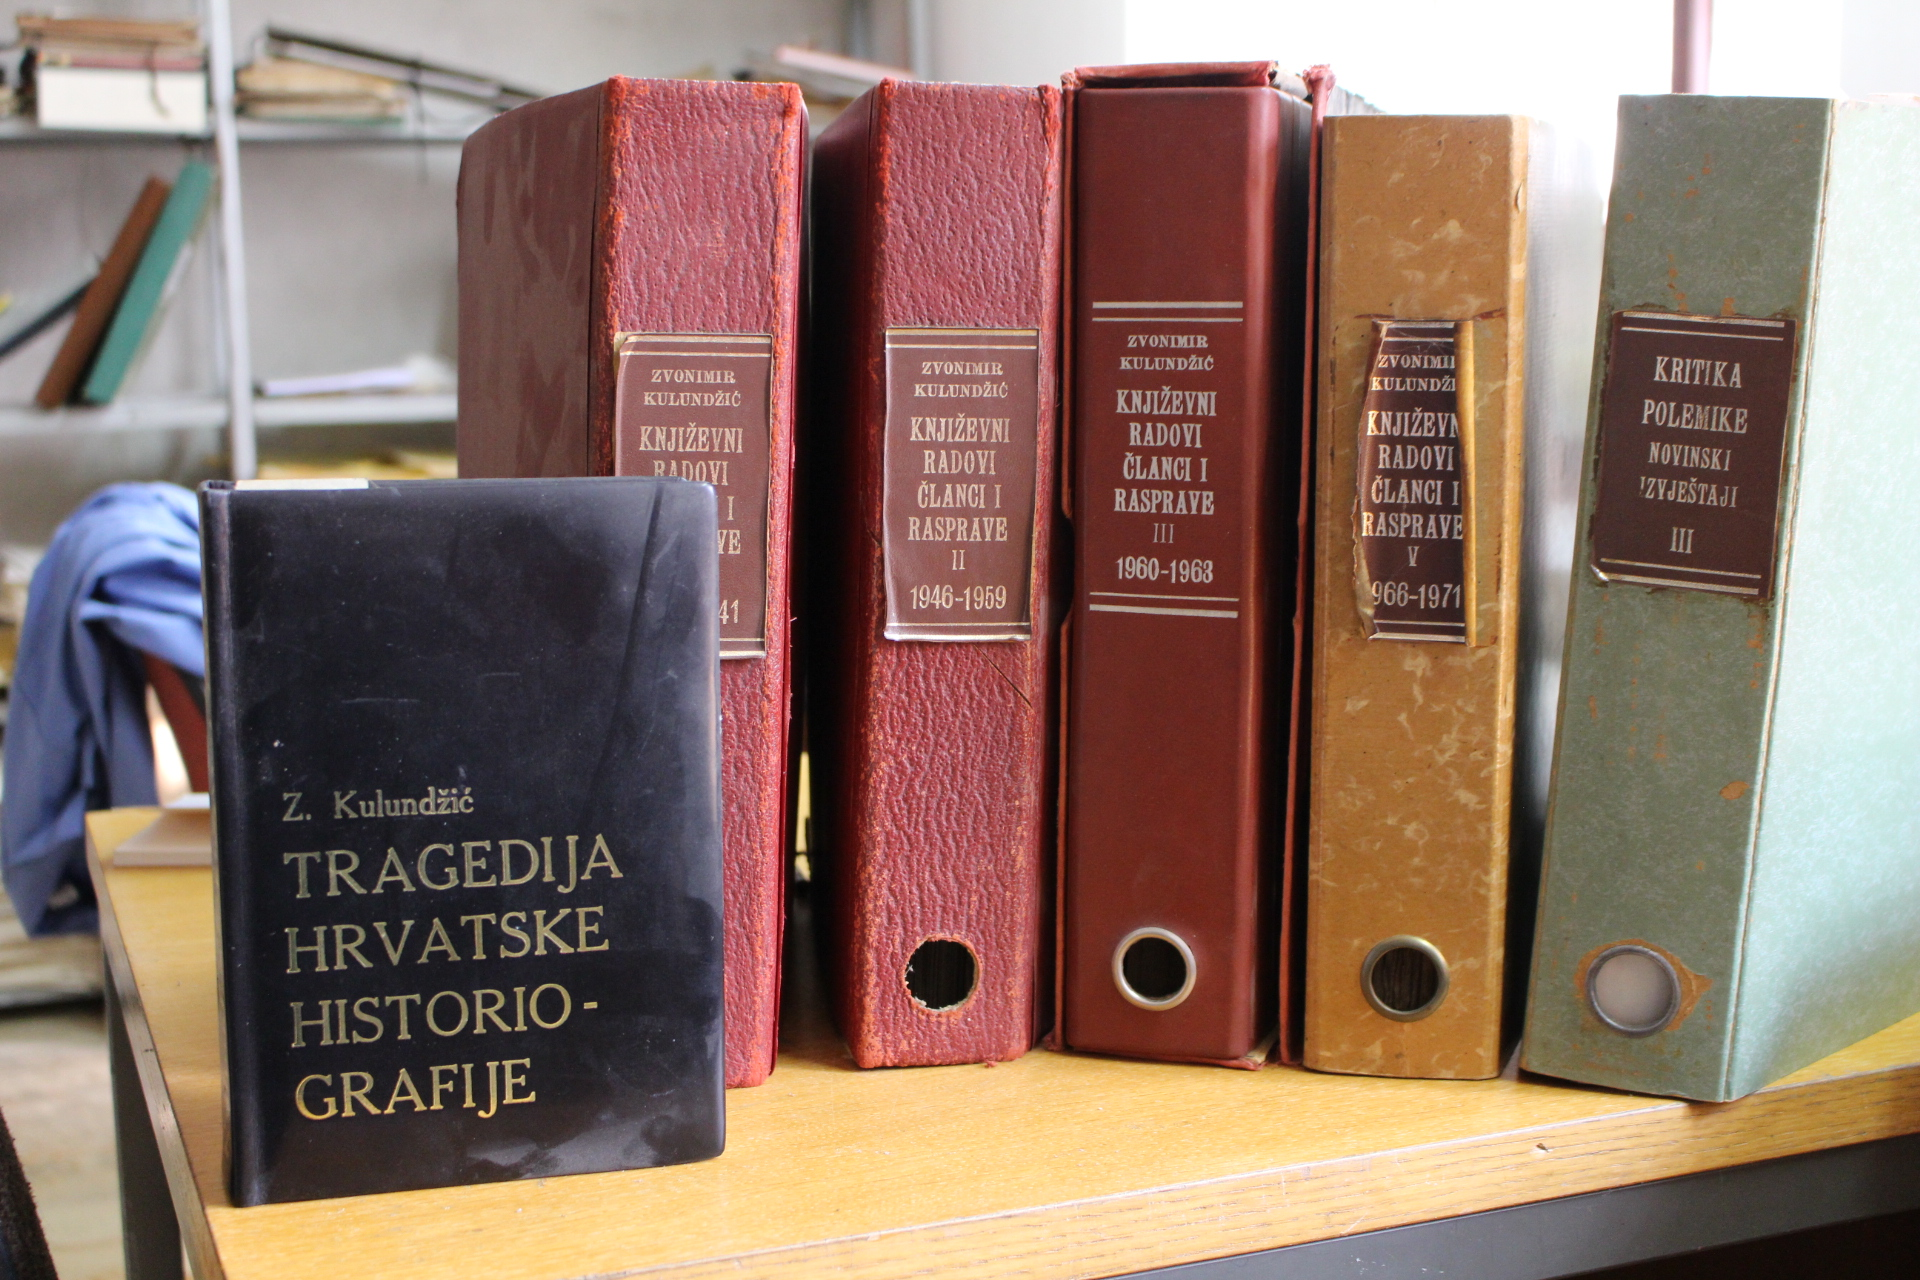 Folders with Zvonimir Kulundžić's published papers and his book The Tragedy of Croatian Historiography at the State Archives in Osijek (2017-03-15).